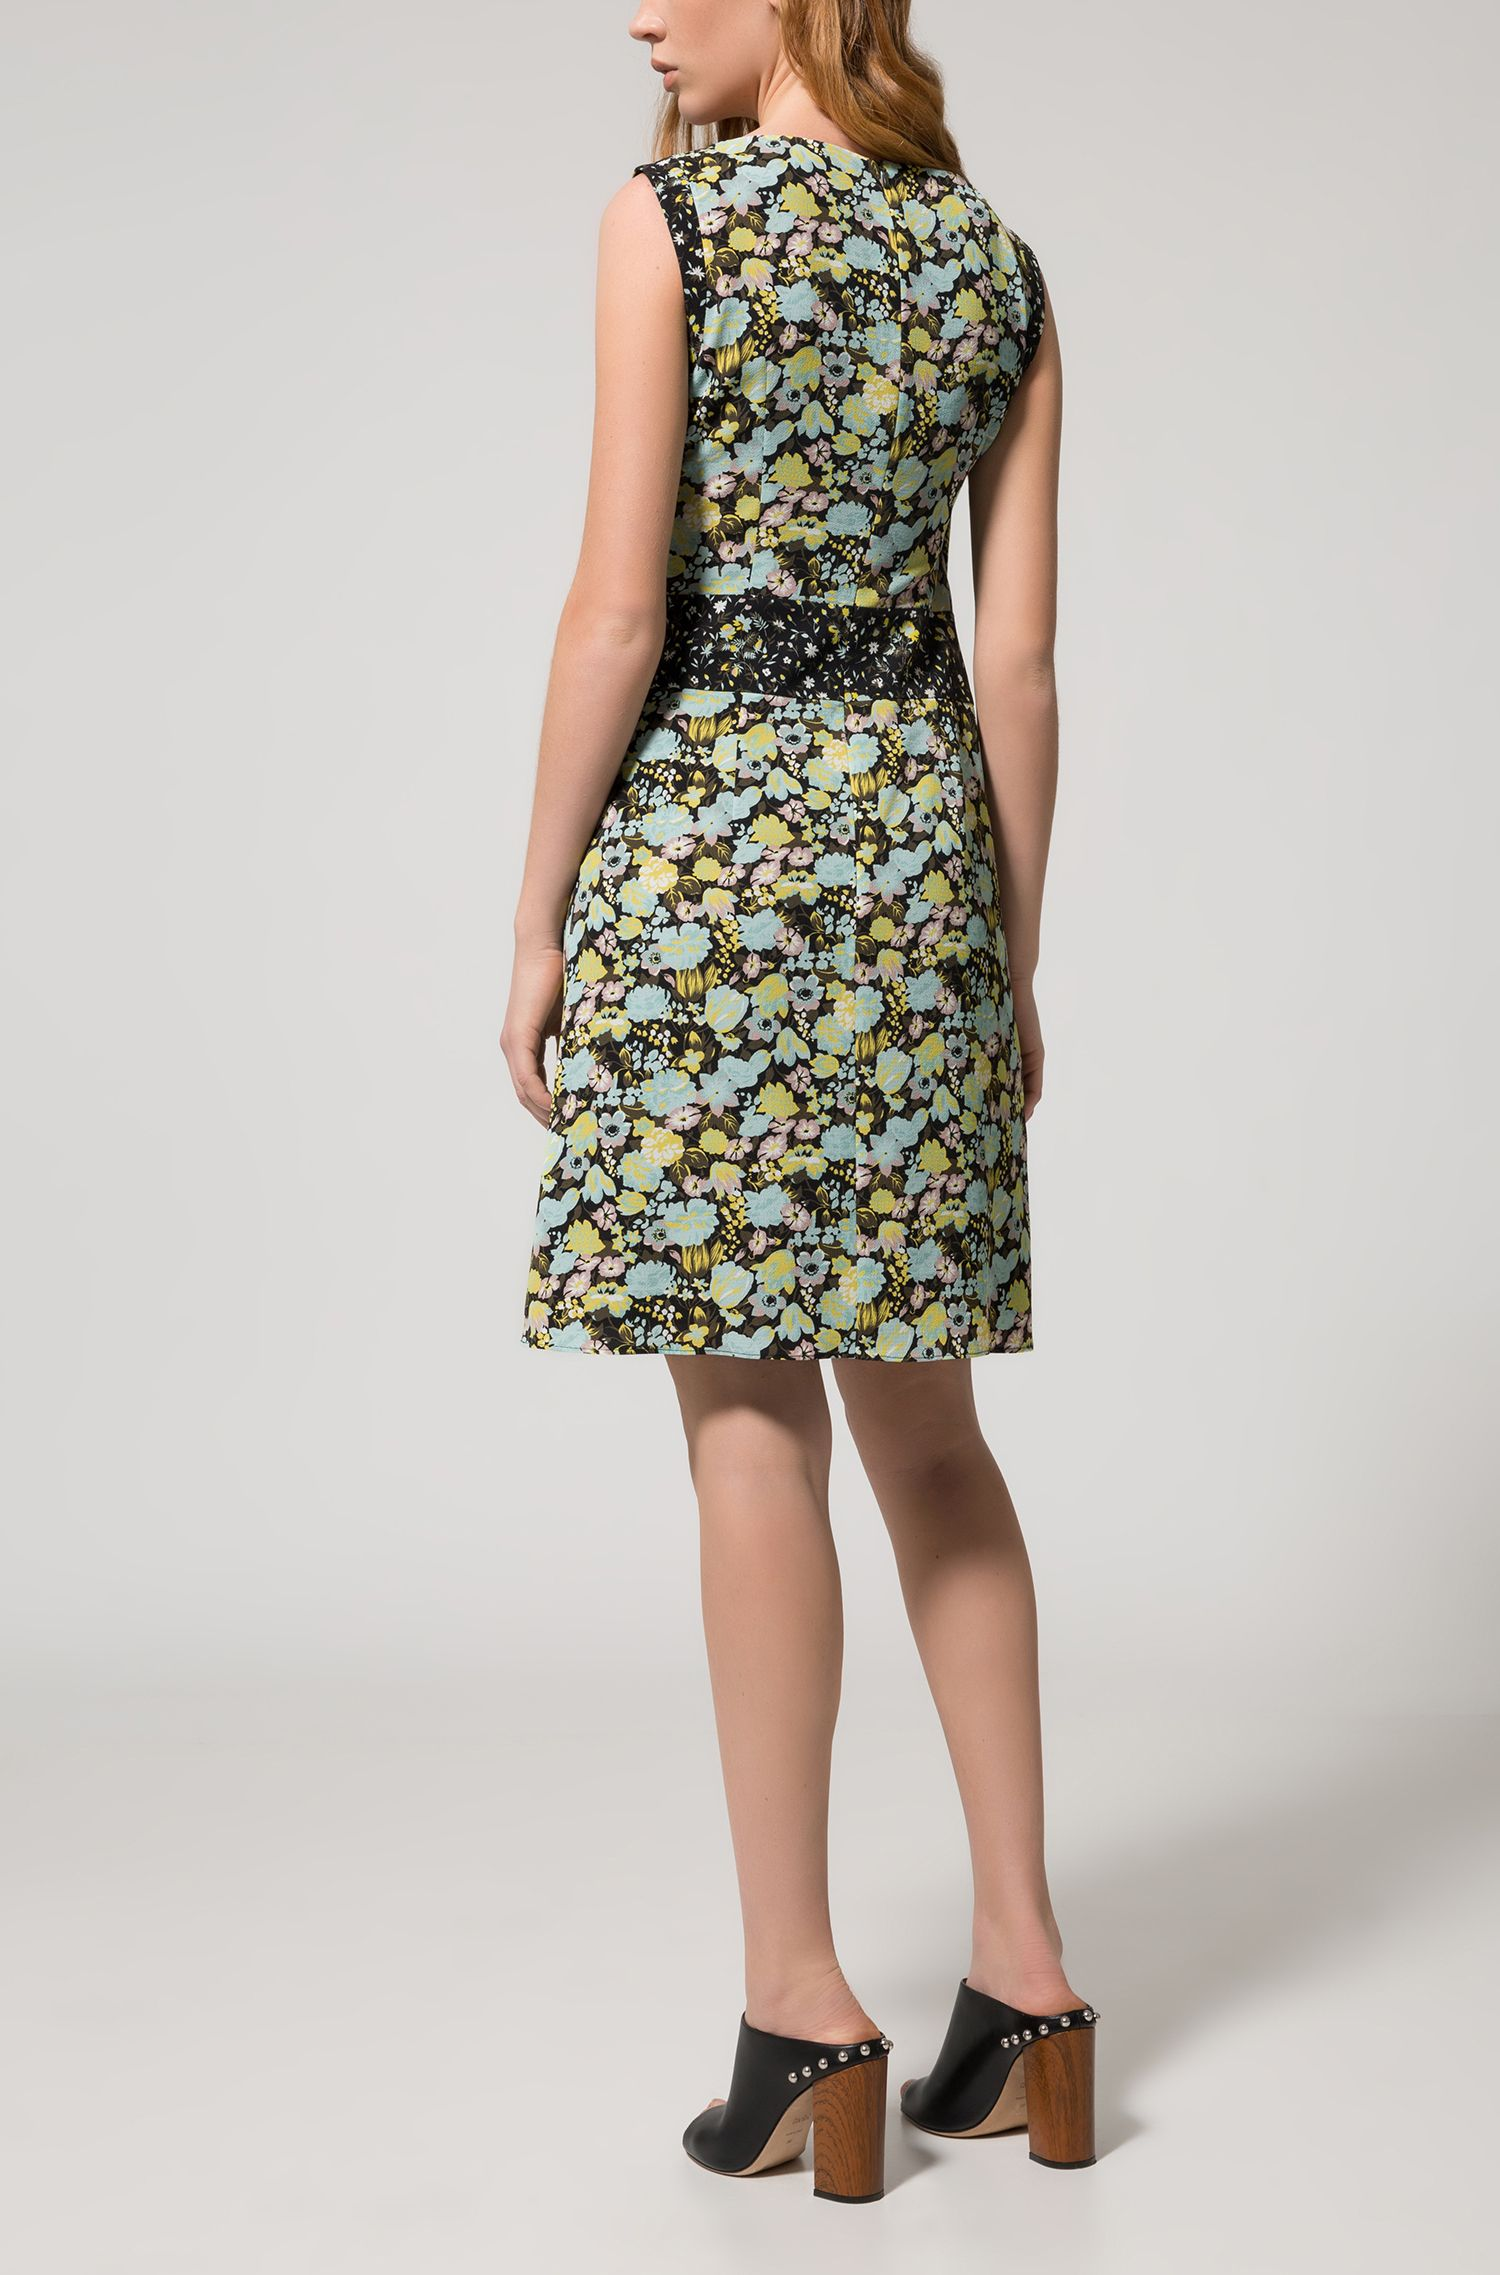 Cap-sleeved floral dress in stretch fabric